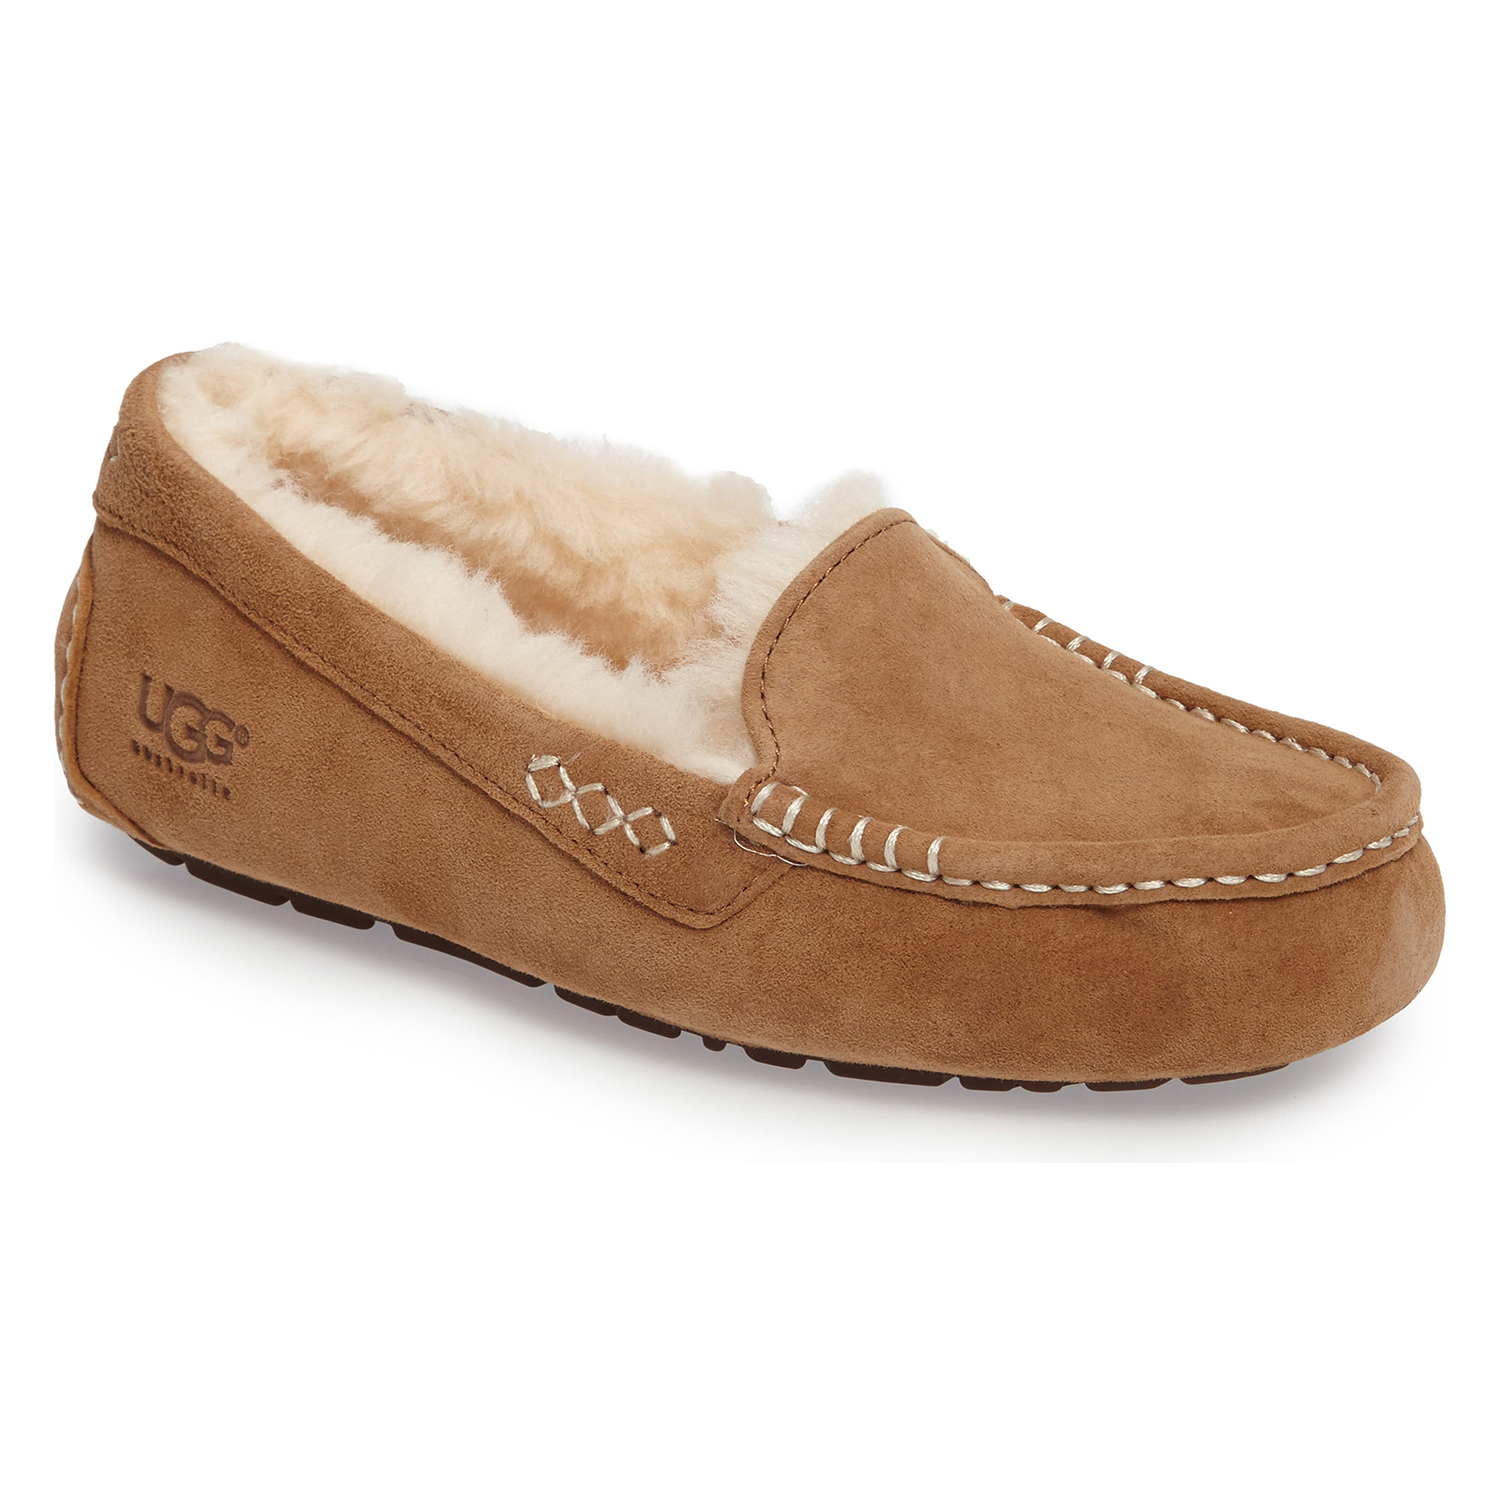 Ugg Ansley Water Resistant Slipper Chestnut